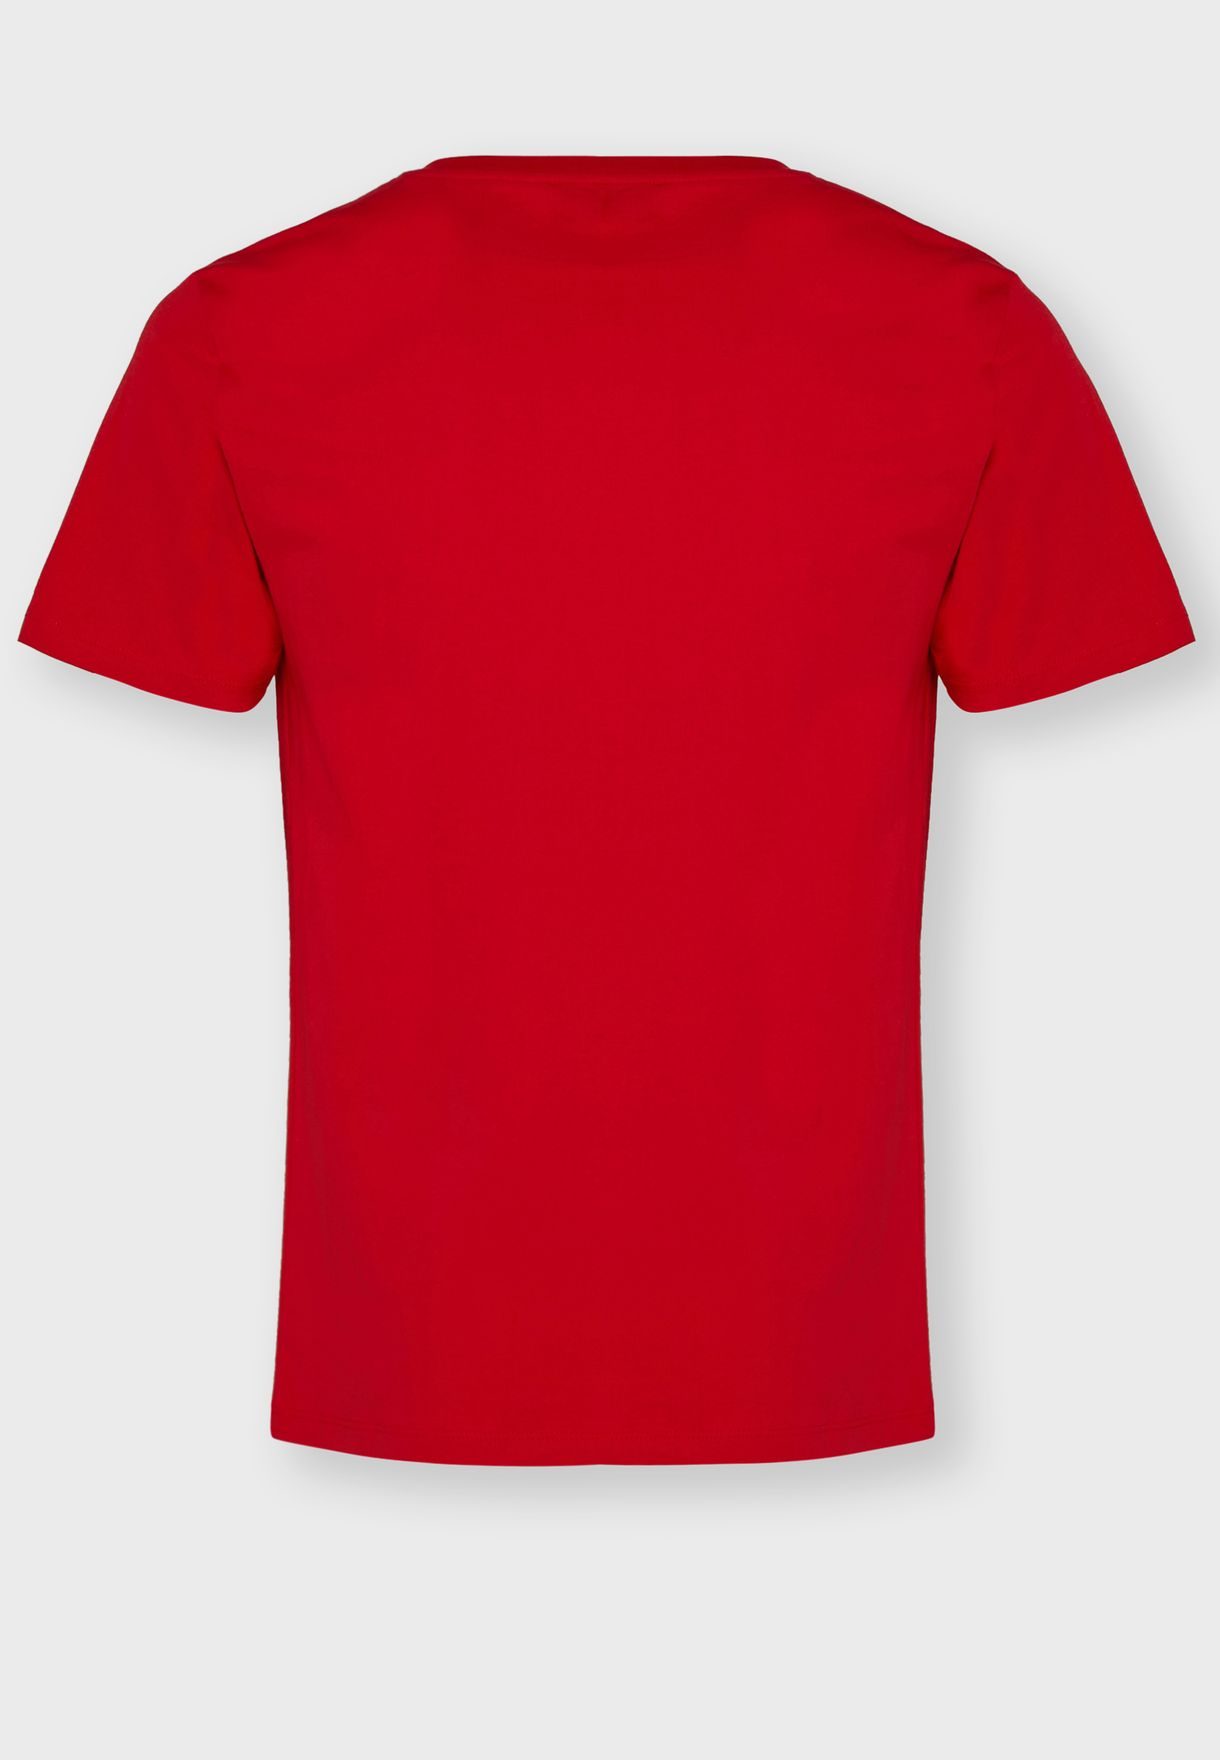 Never Forget Print T Shirt